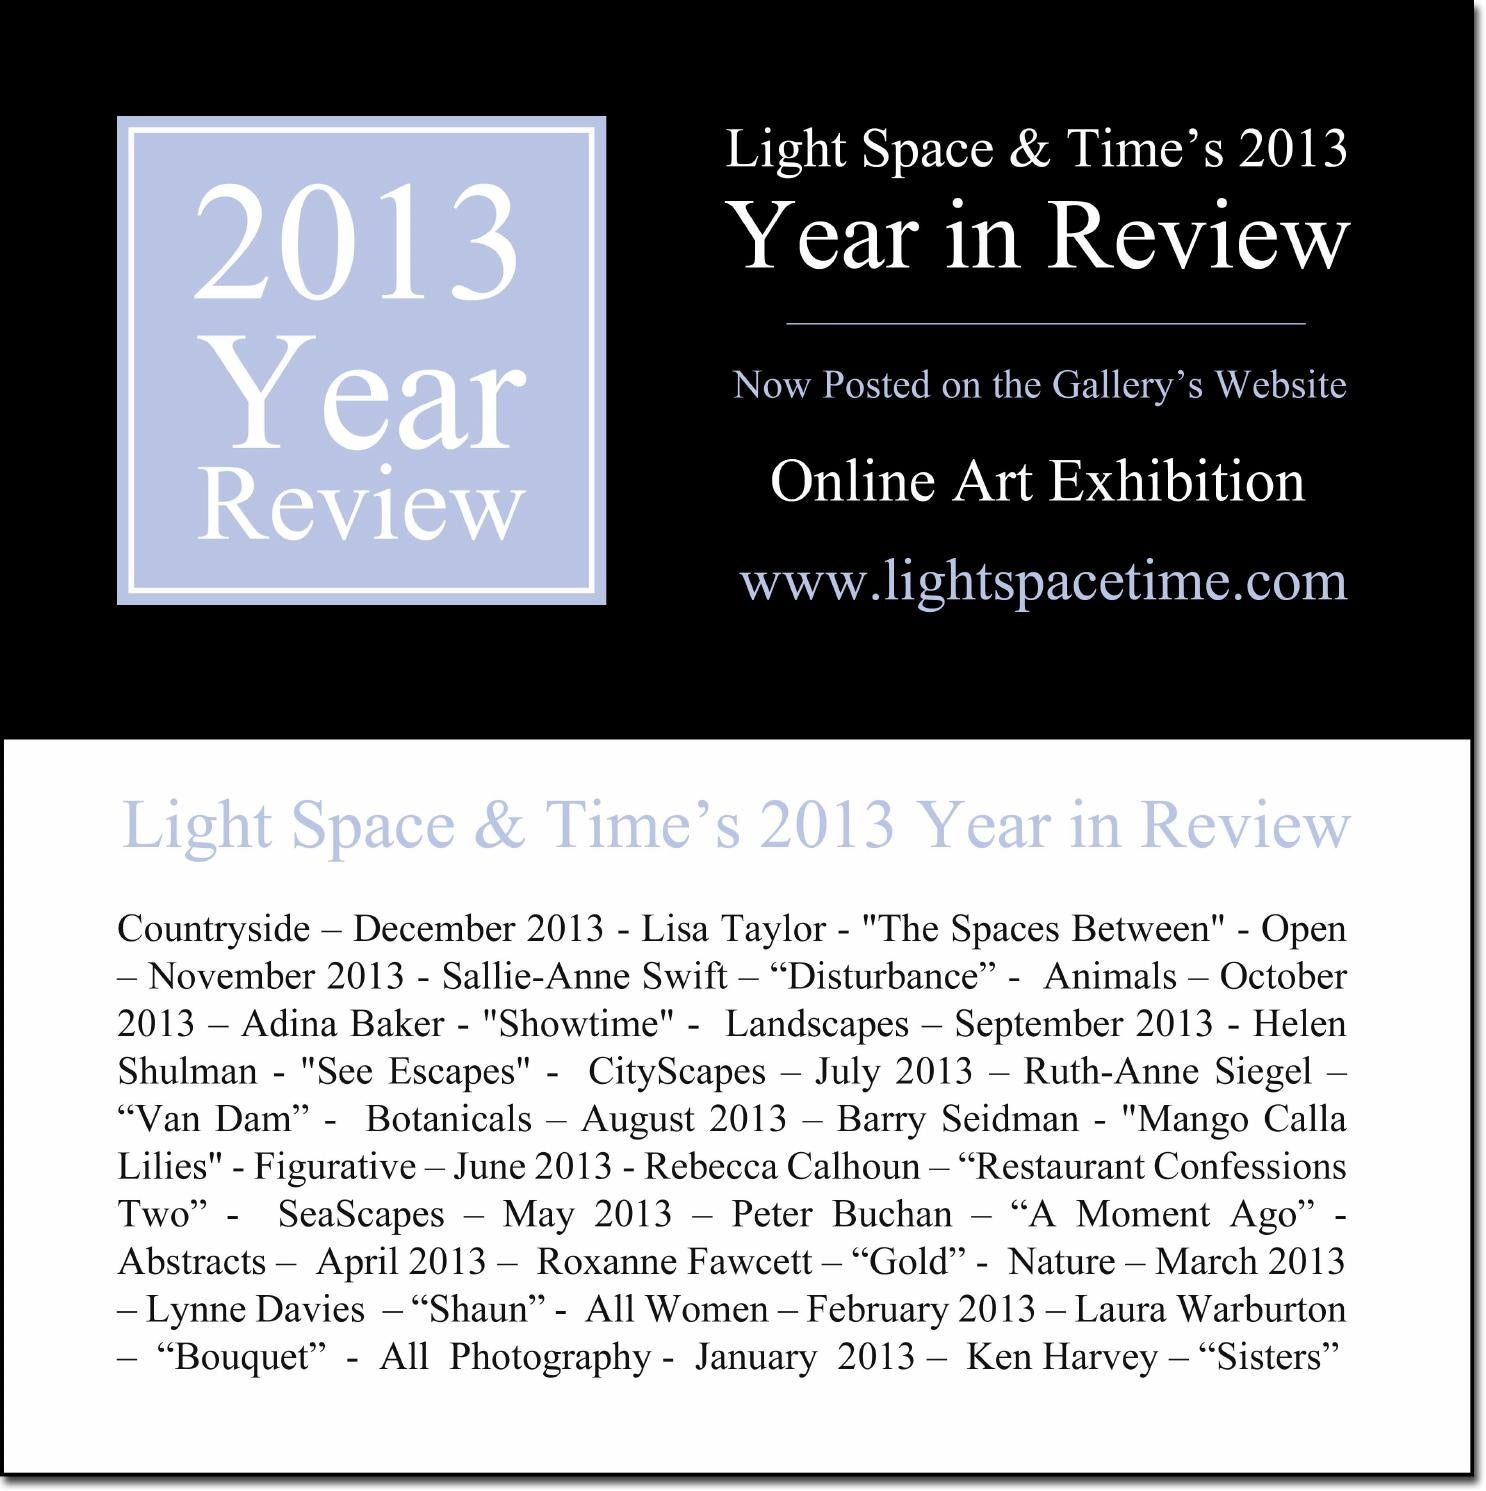 2013 year in review event postcard by light space time for Online art galleries reviews